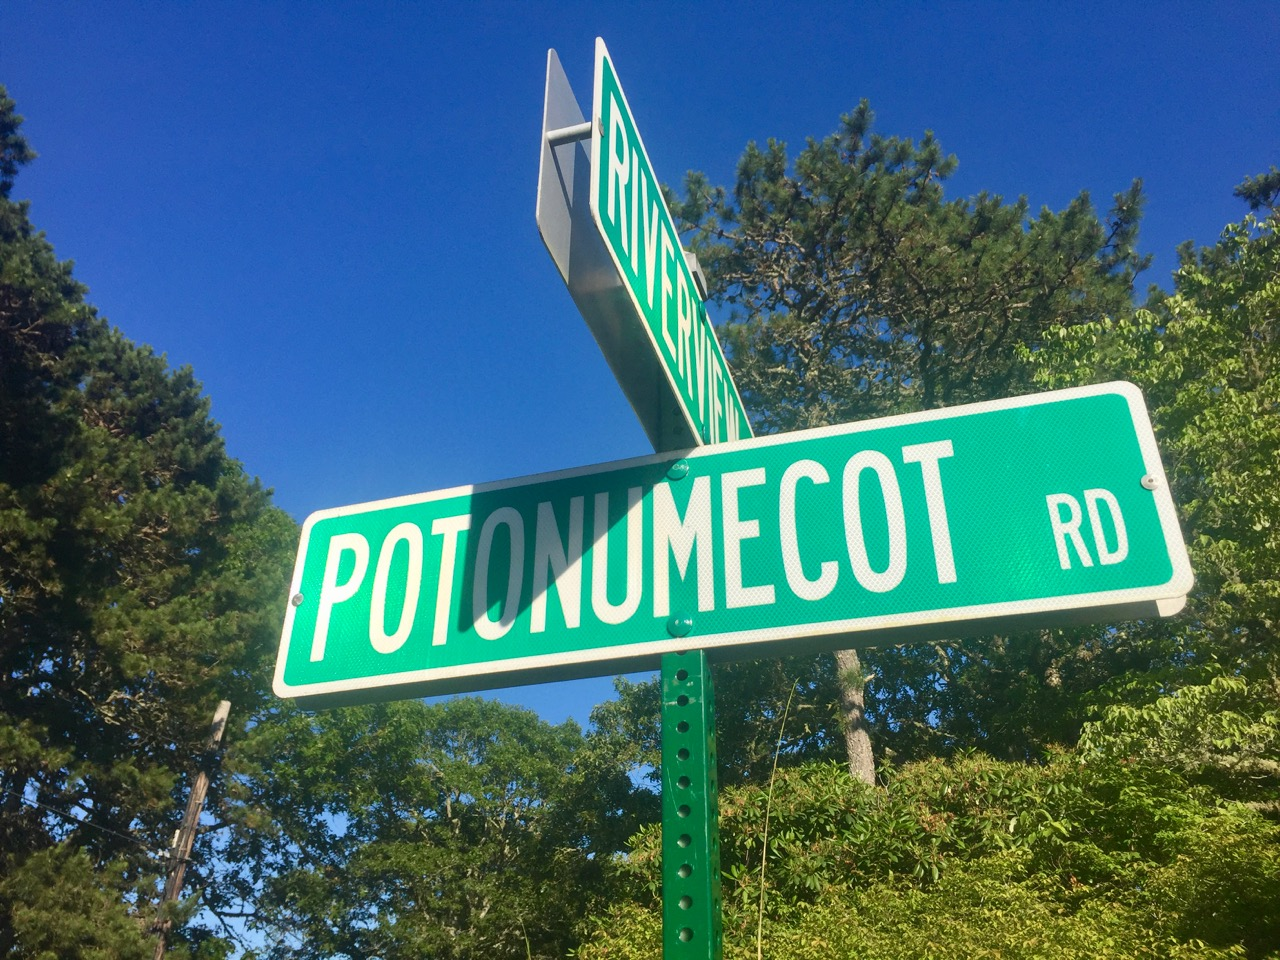 Potonumecot Road